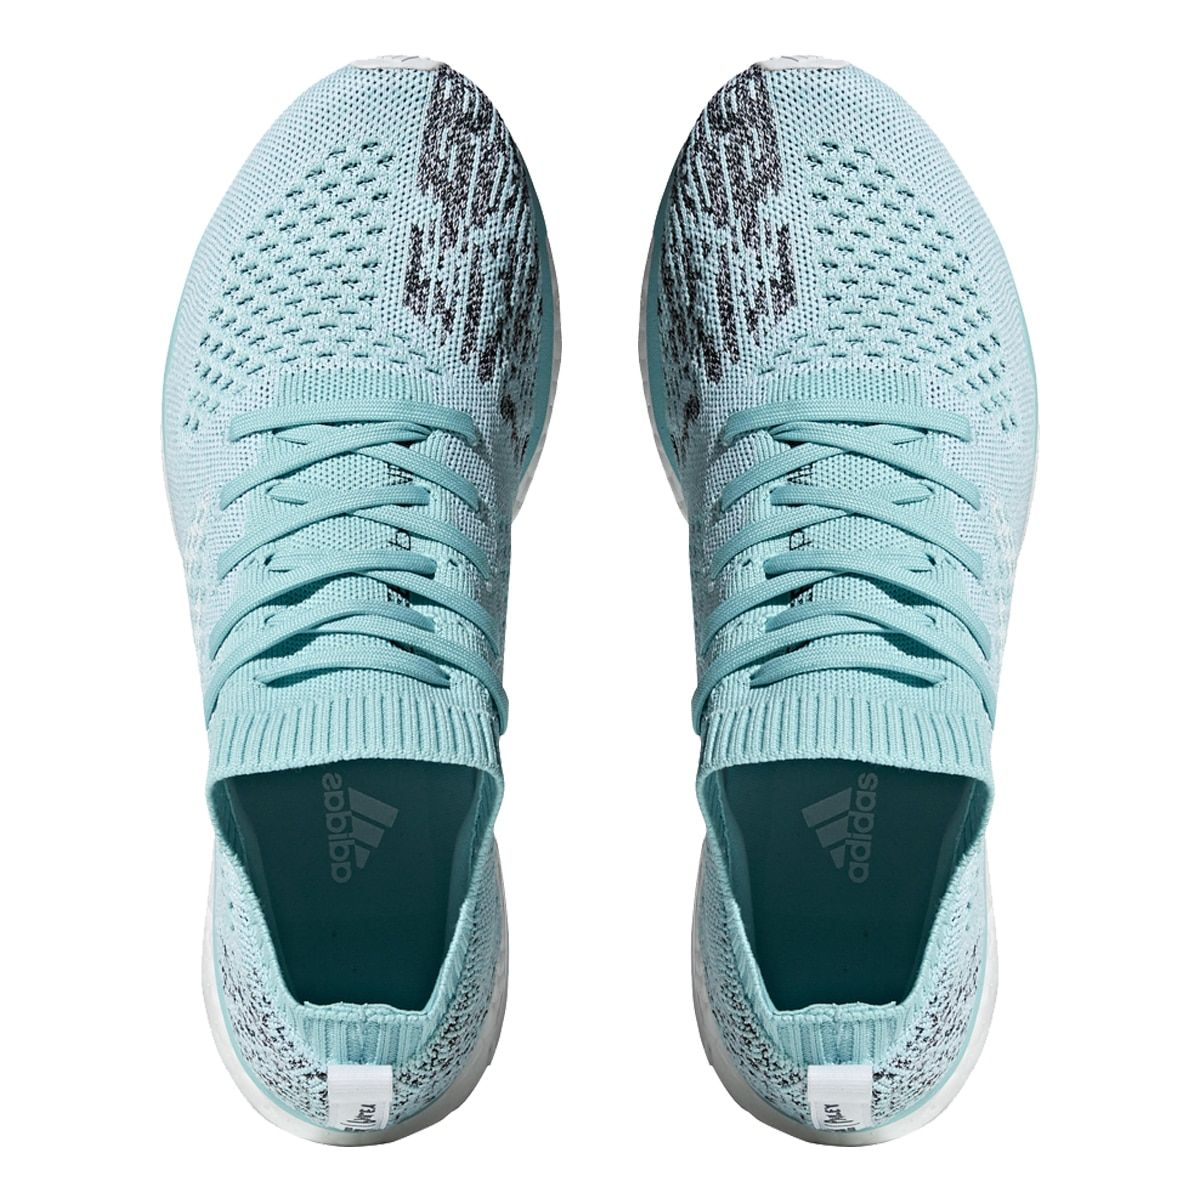 Adidas Prime Parley Men's Sneakers AQ0201 Blue, White